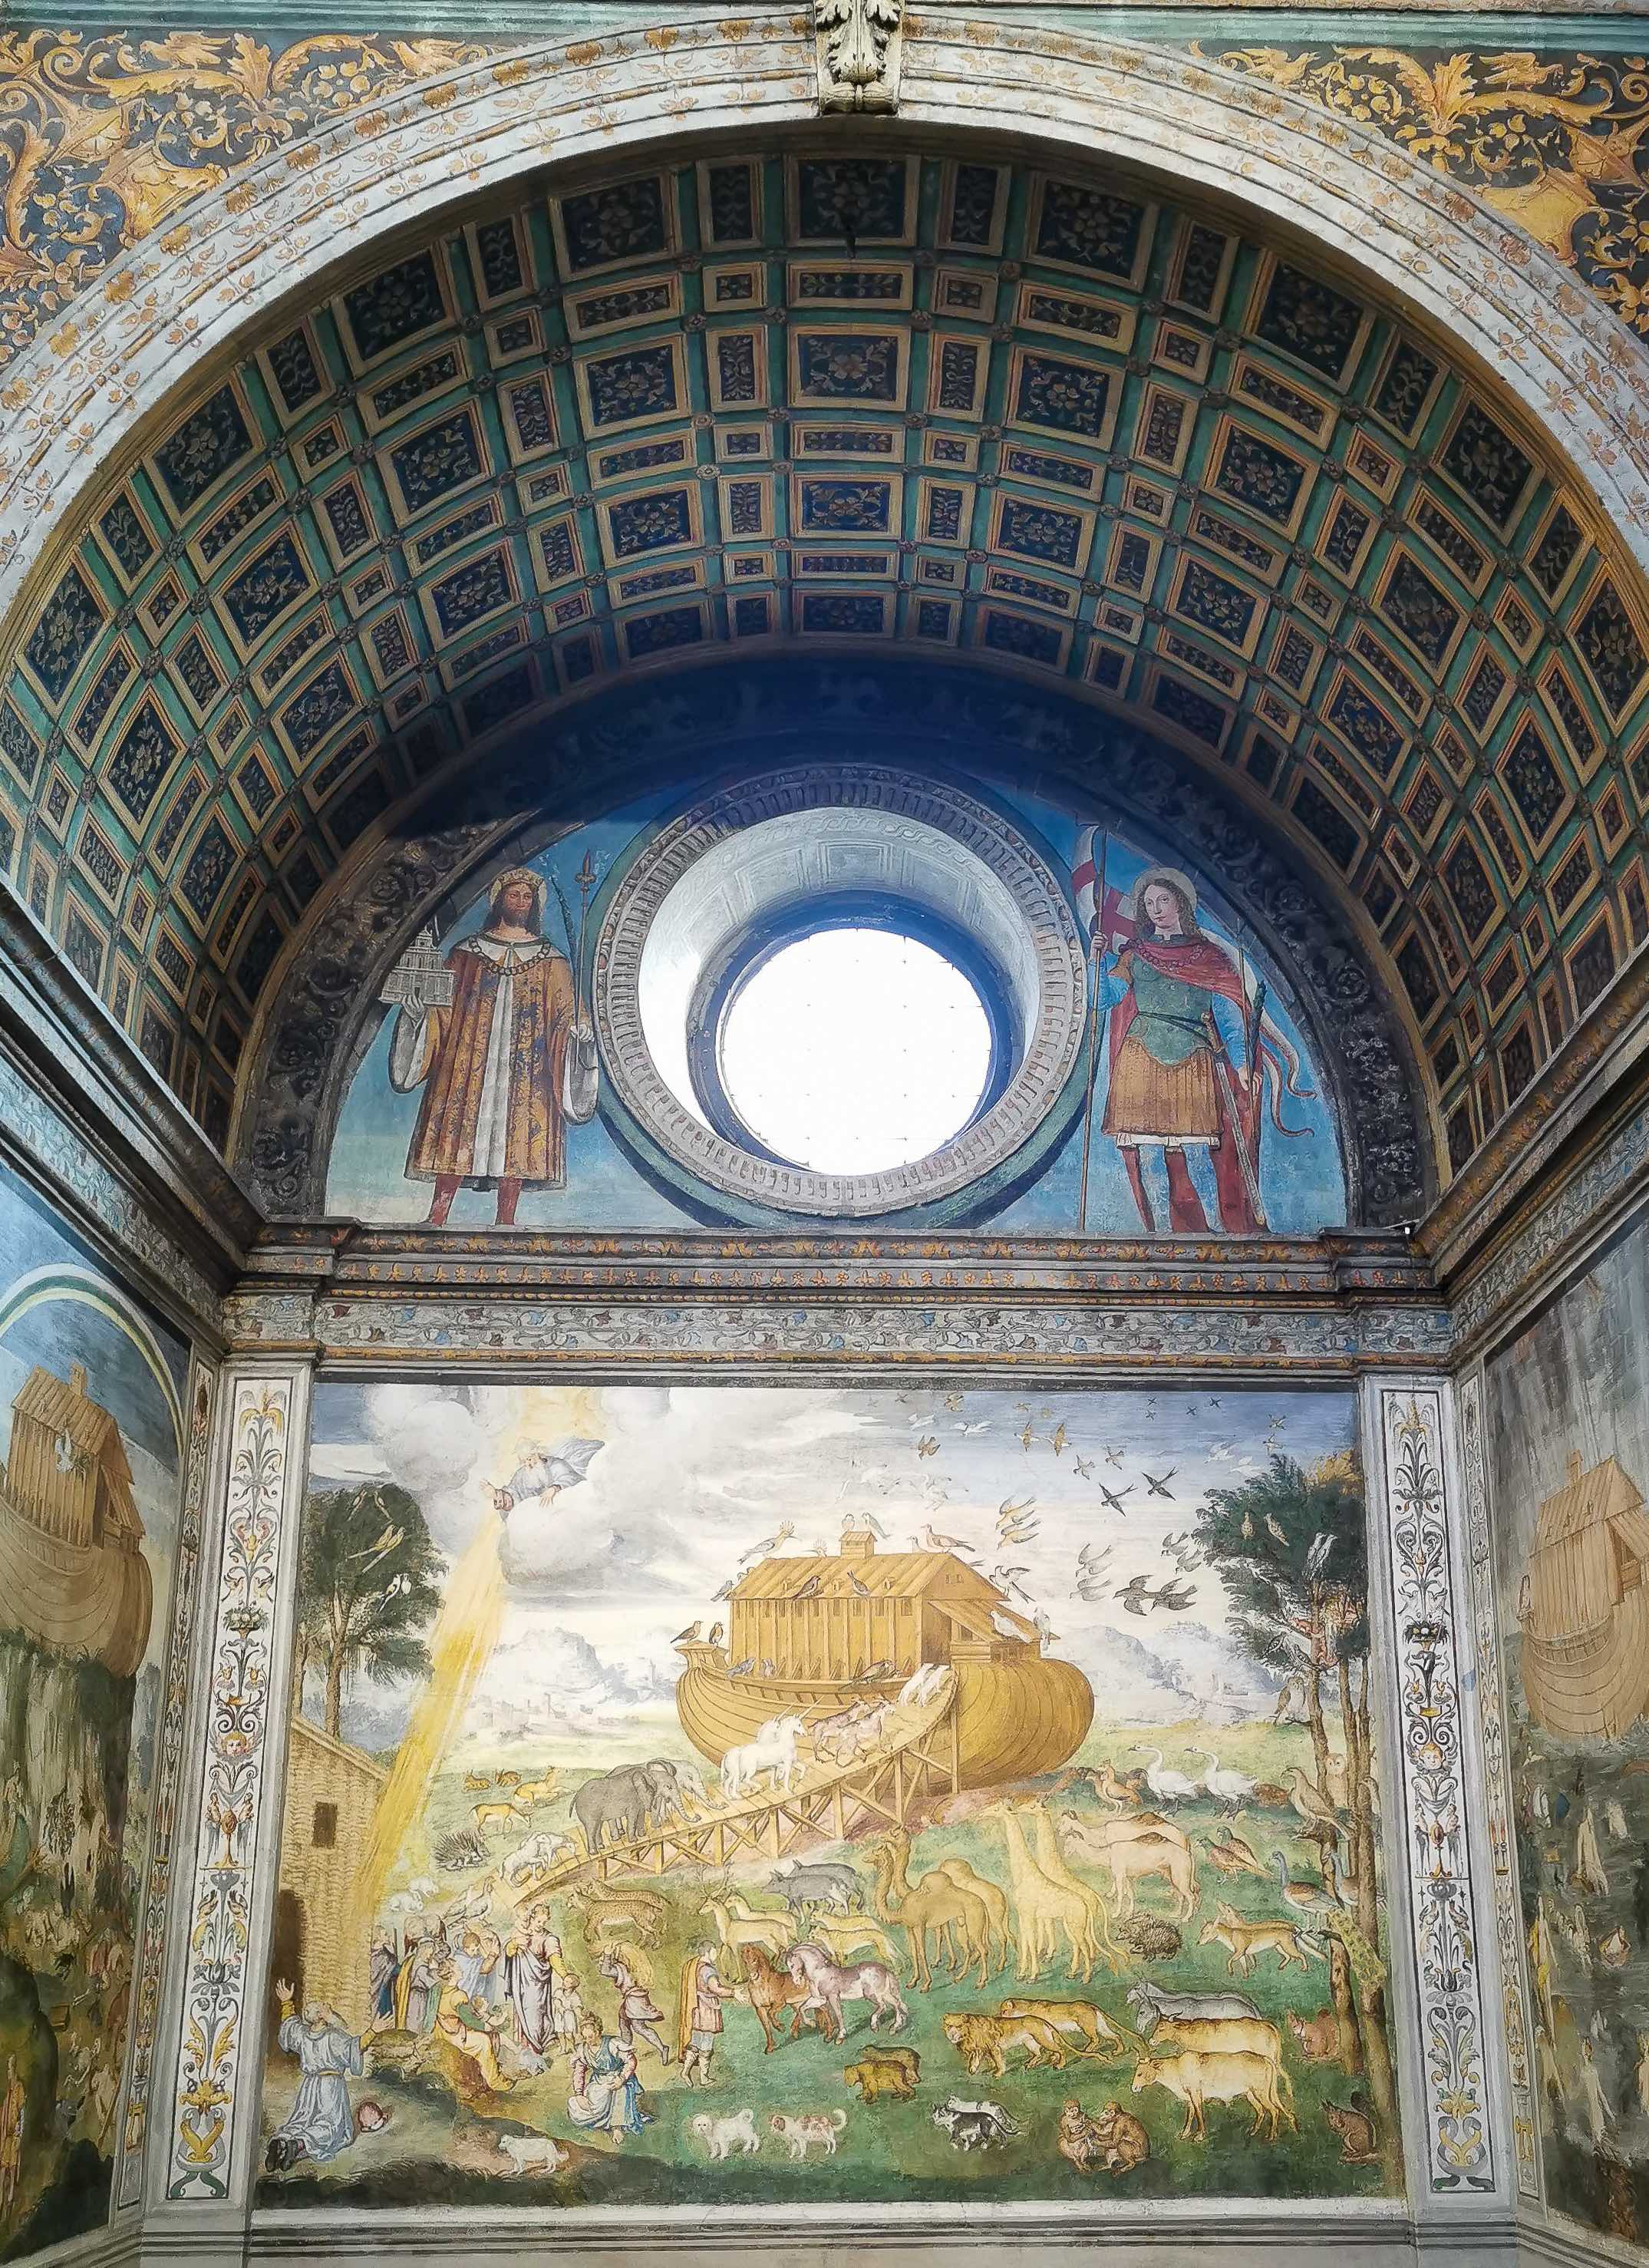 The beautiful frescoes at the Church of San Maurizio al Monastero Maggiore in Milan